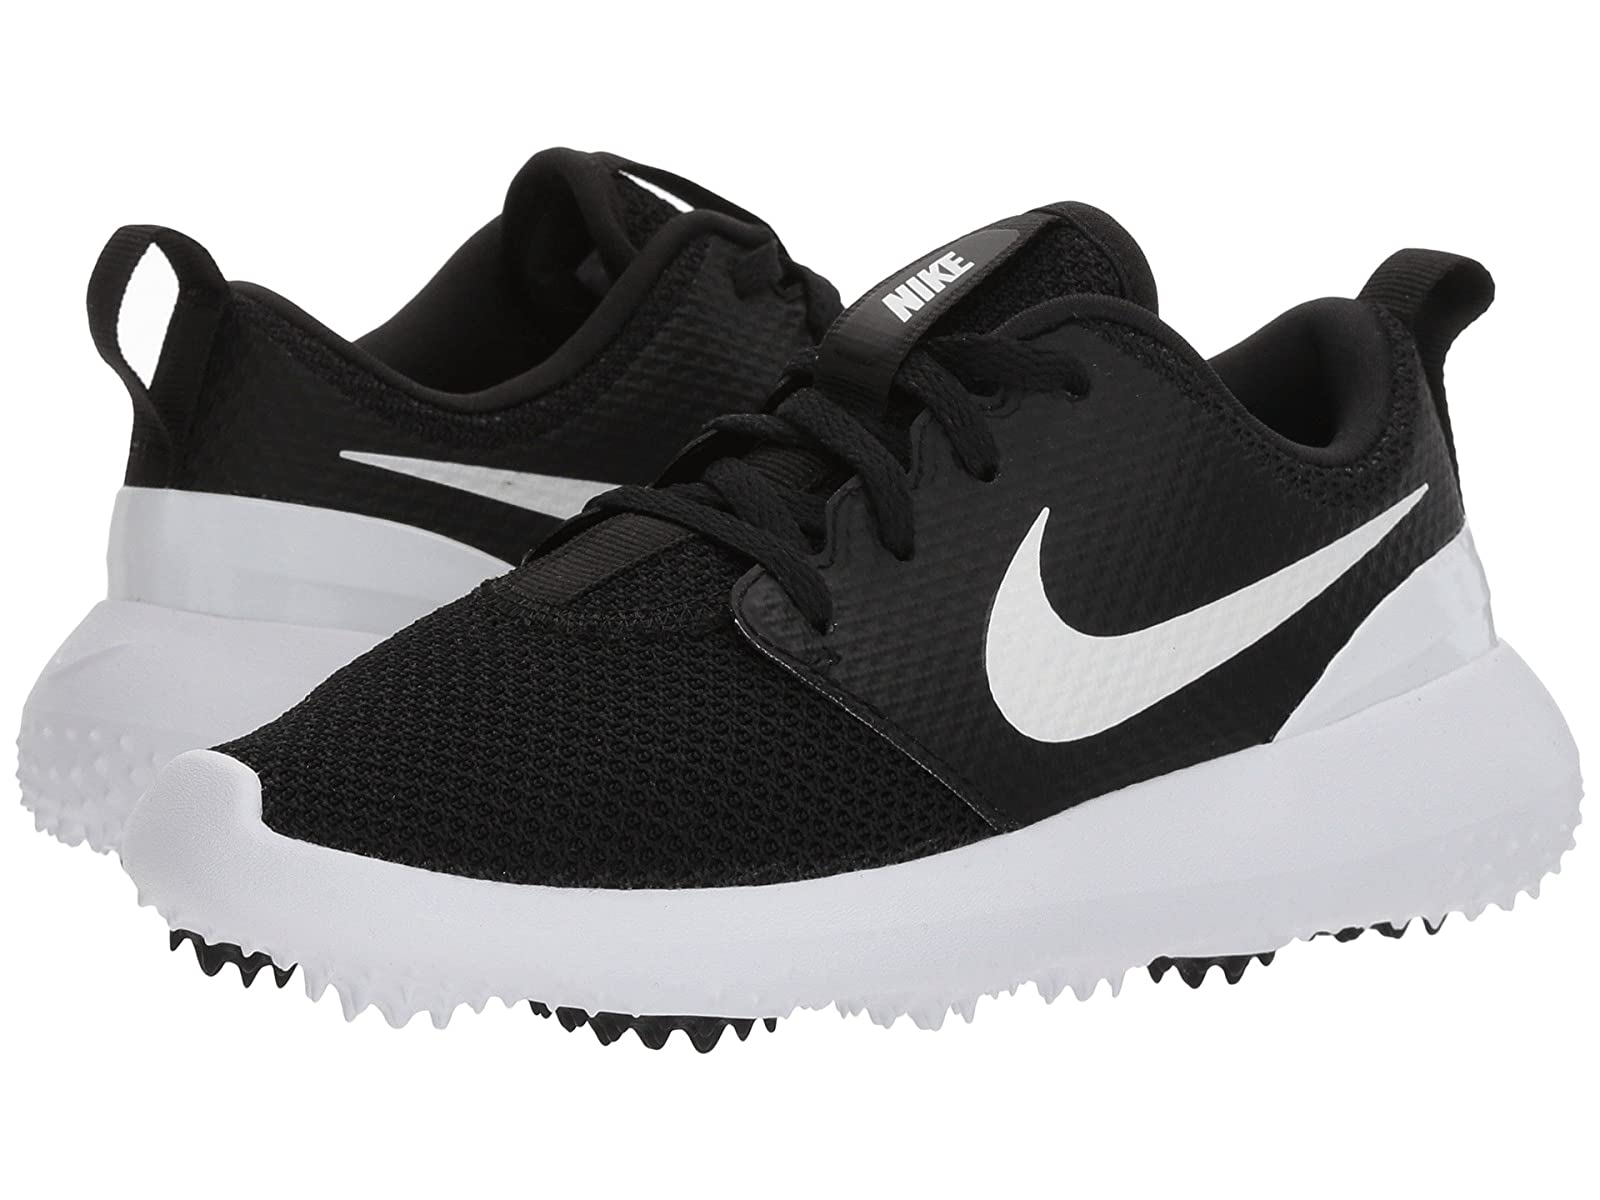 Nike Golf Roshe G (Little Kid/Big Kid)Atmospheric grades have affordable shoes